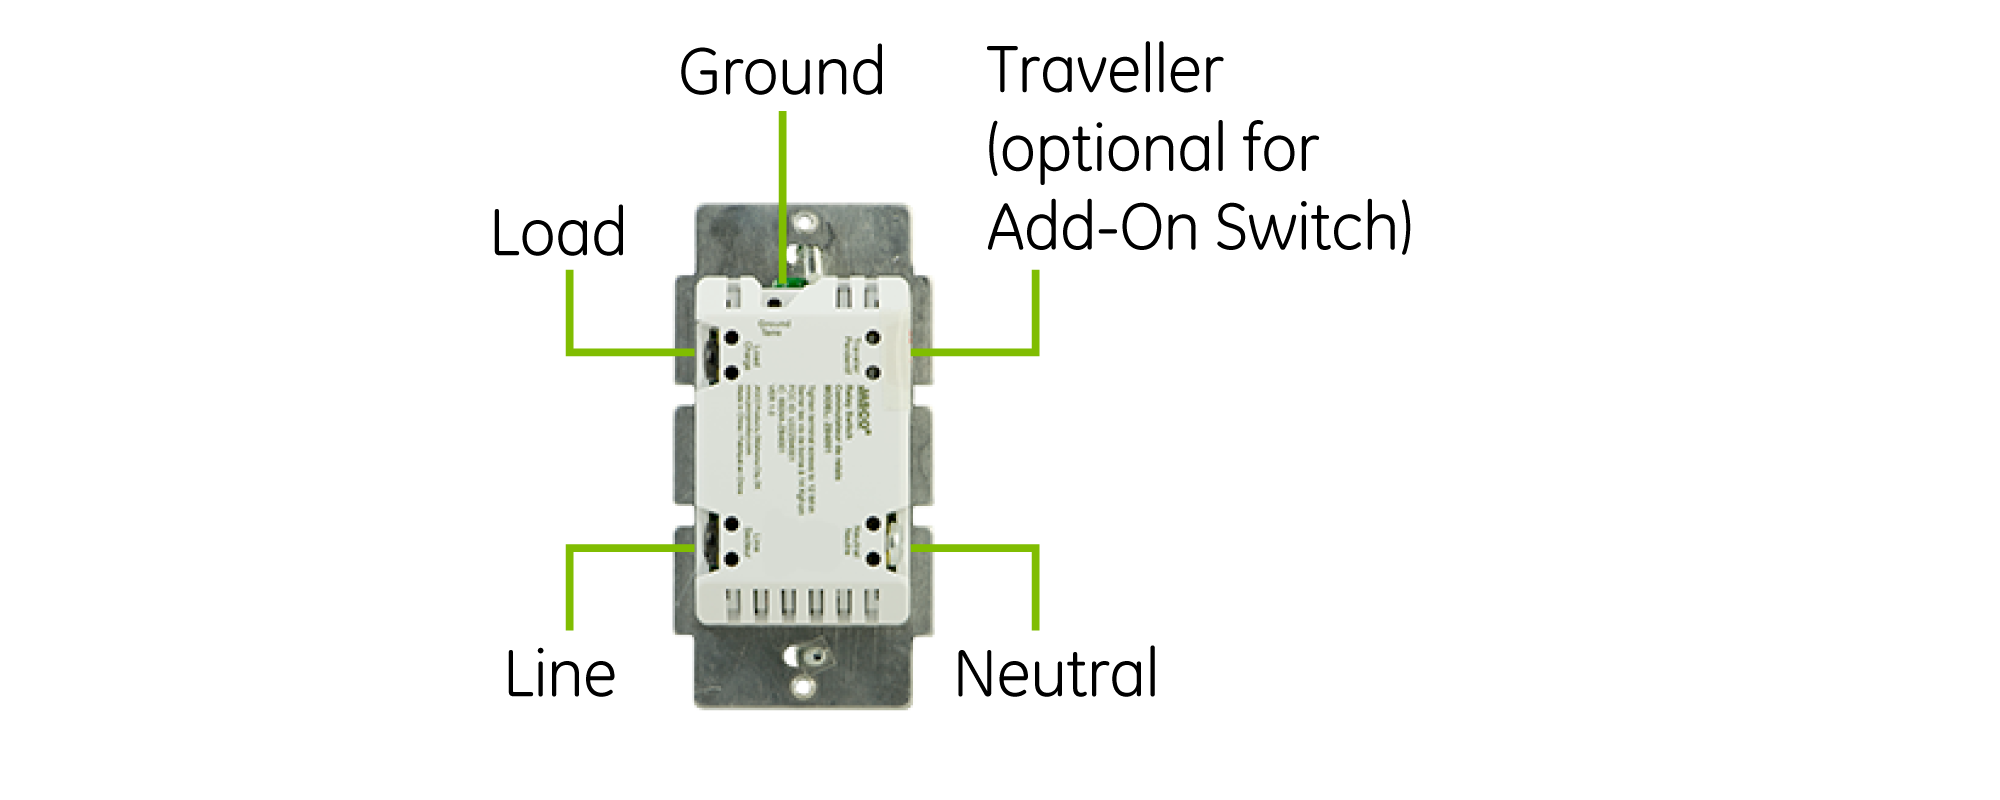 GE Z-Wave Plus In-Wall Smart Dimmer | For the Home | Diagram ... on